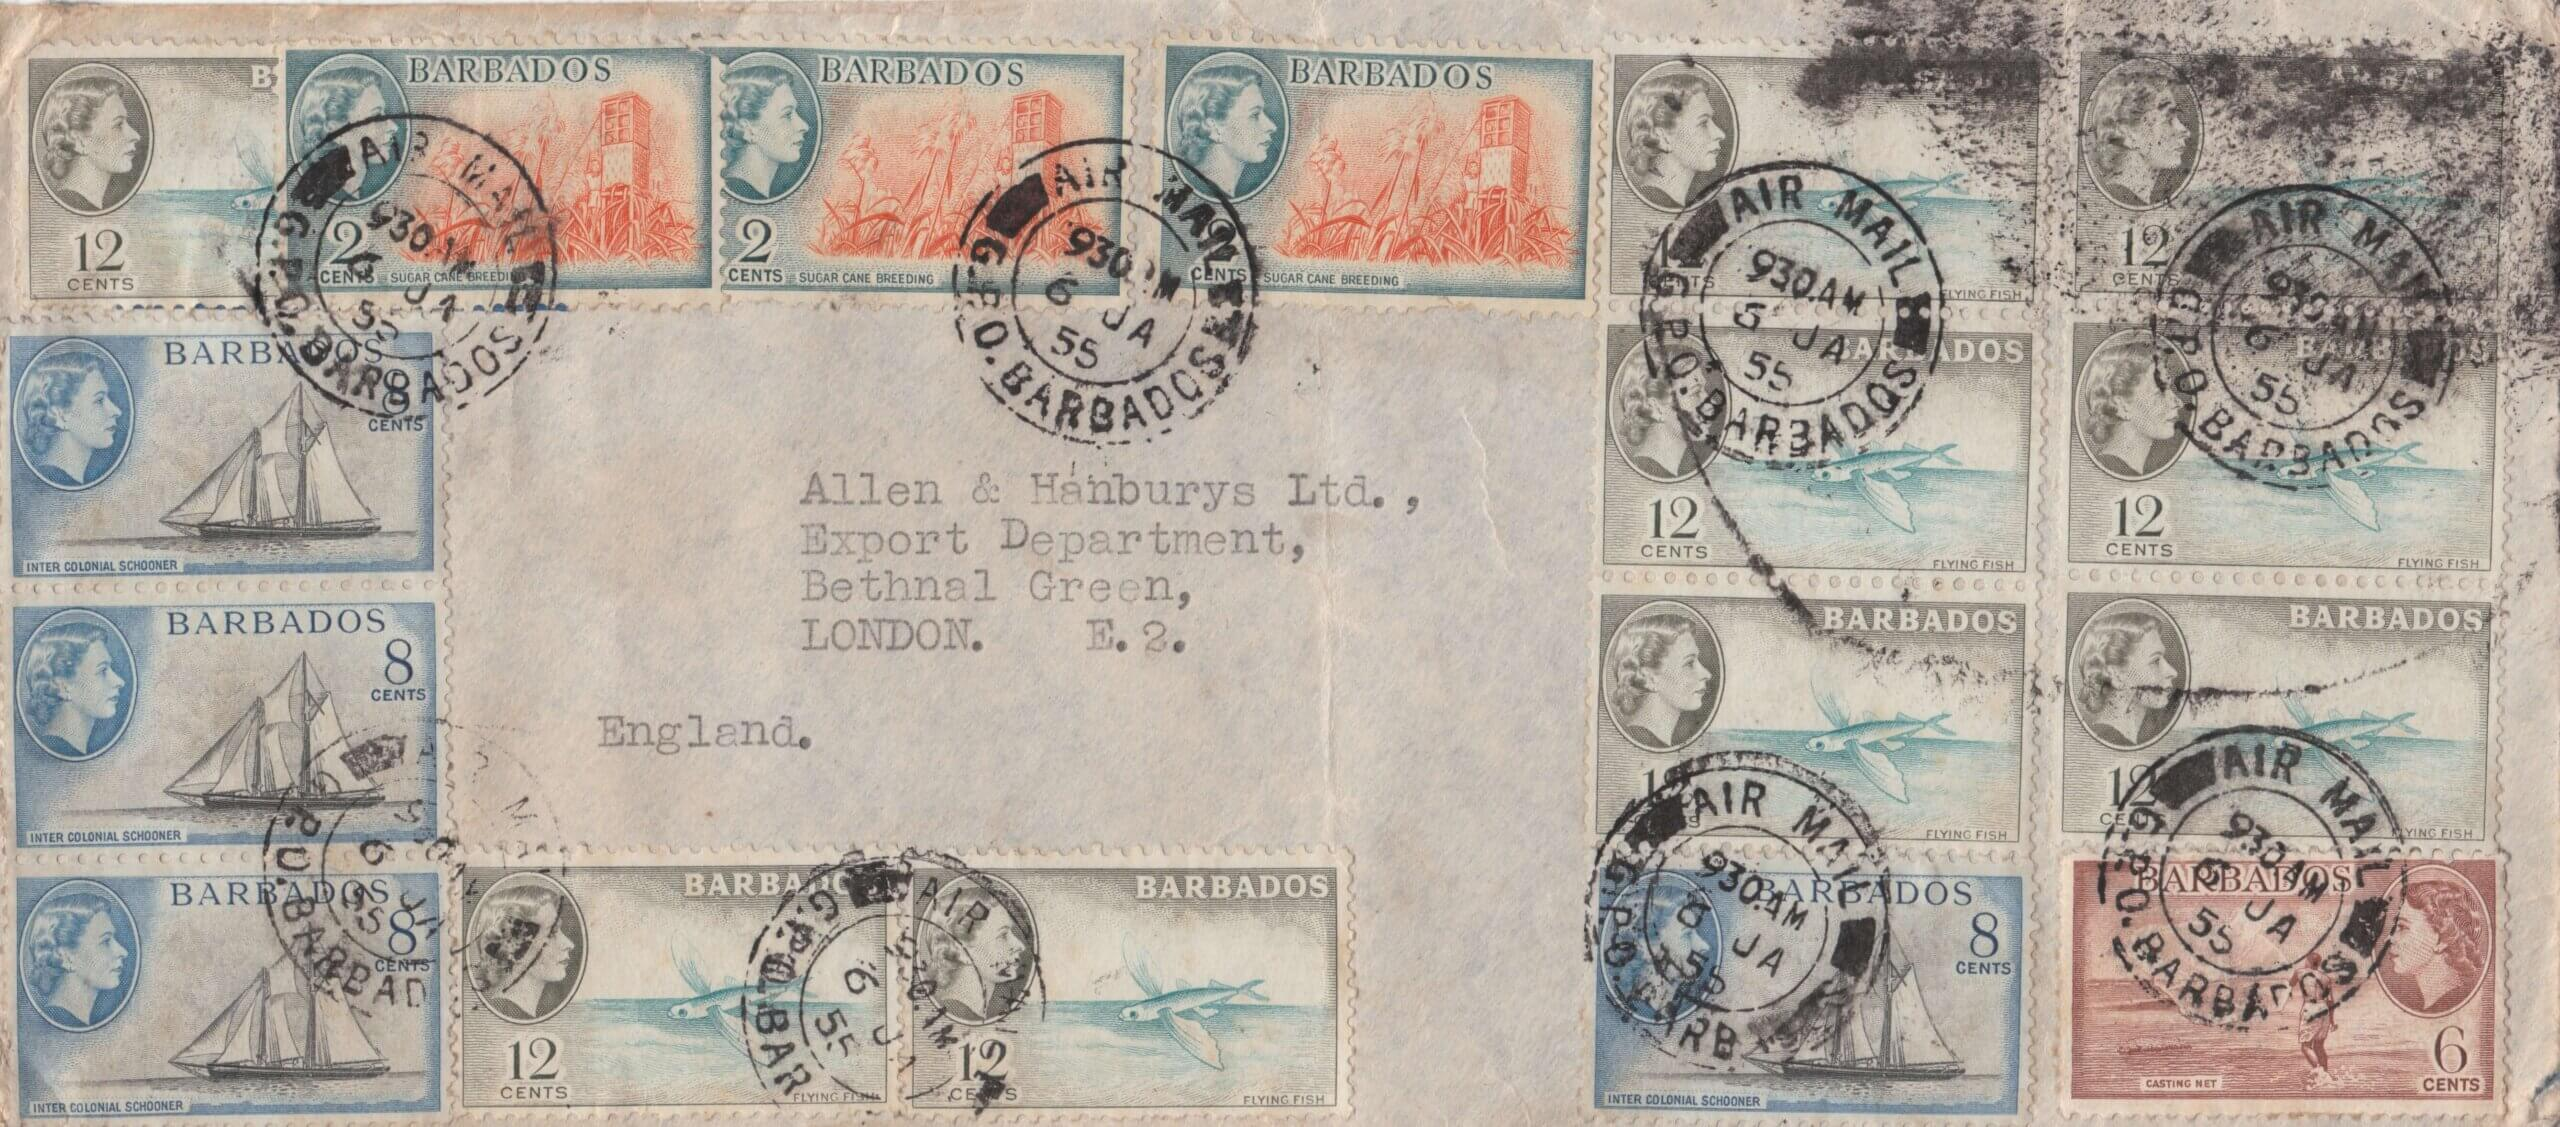 Barbados 1955 AIr Mail